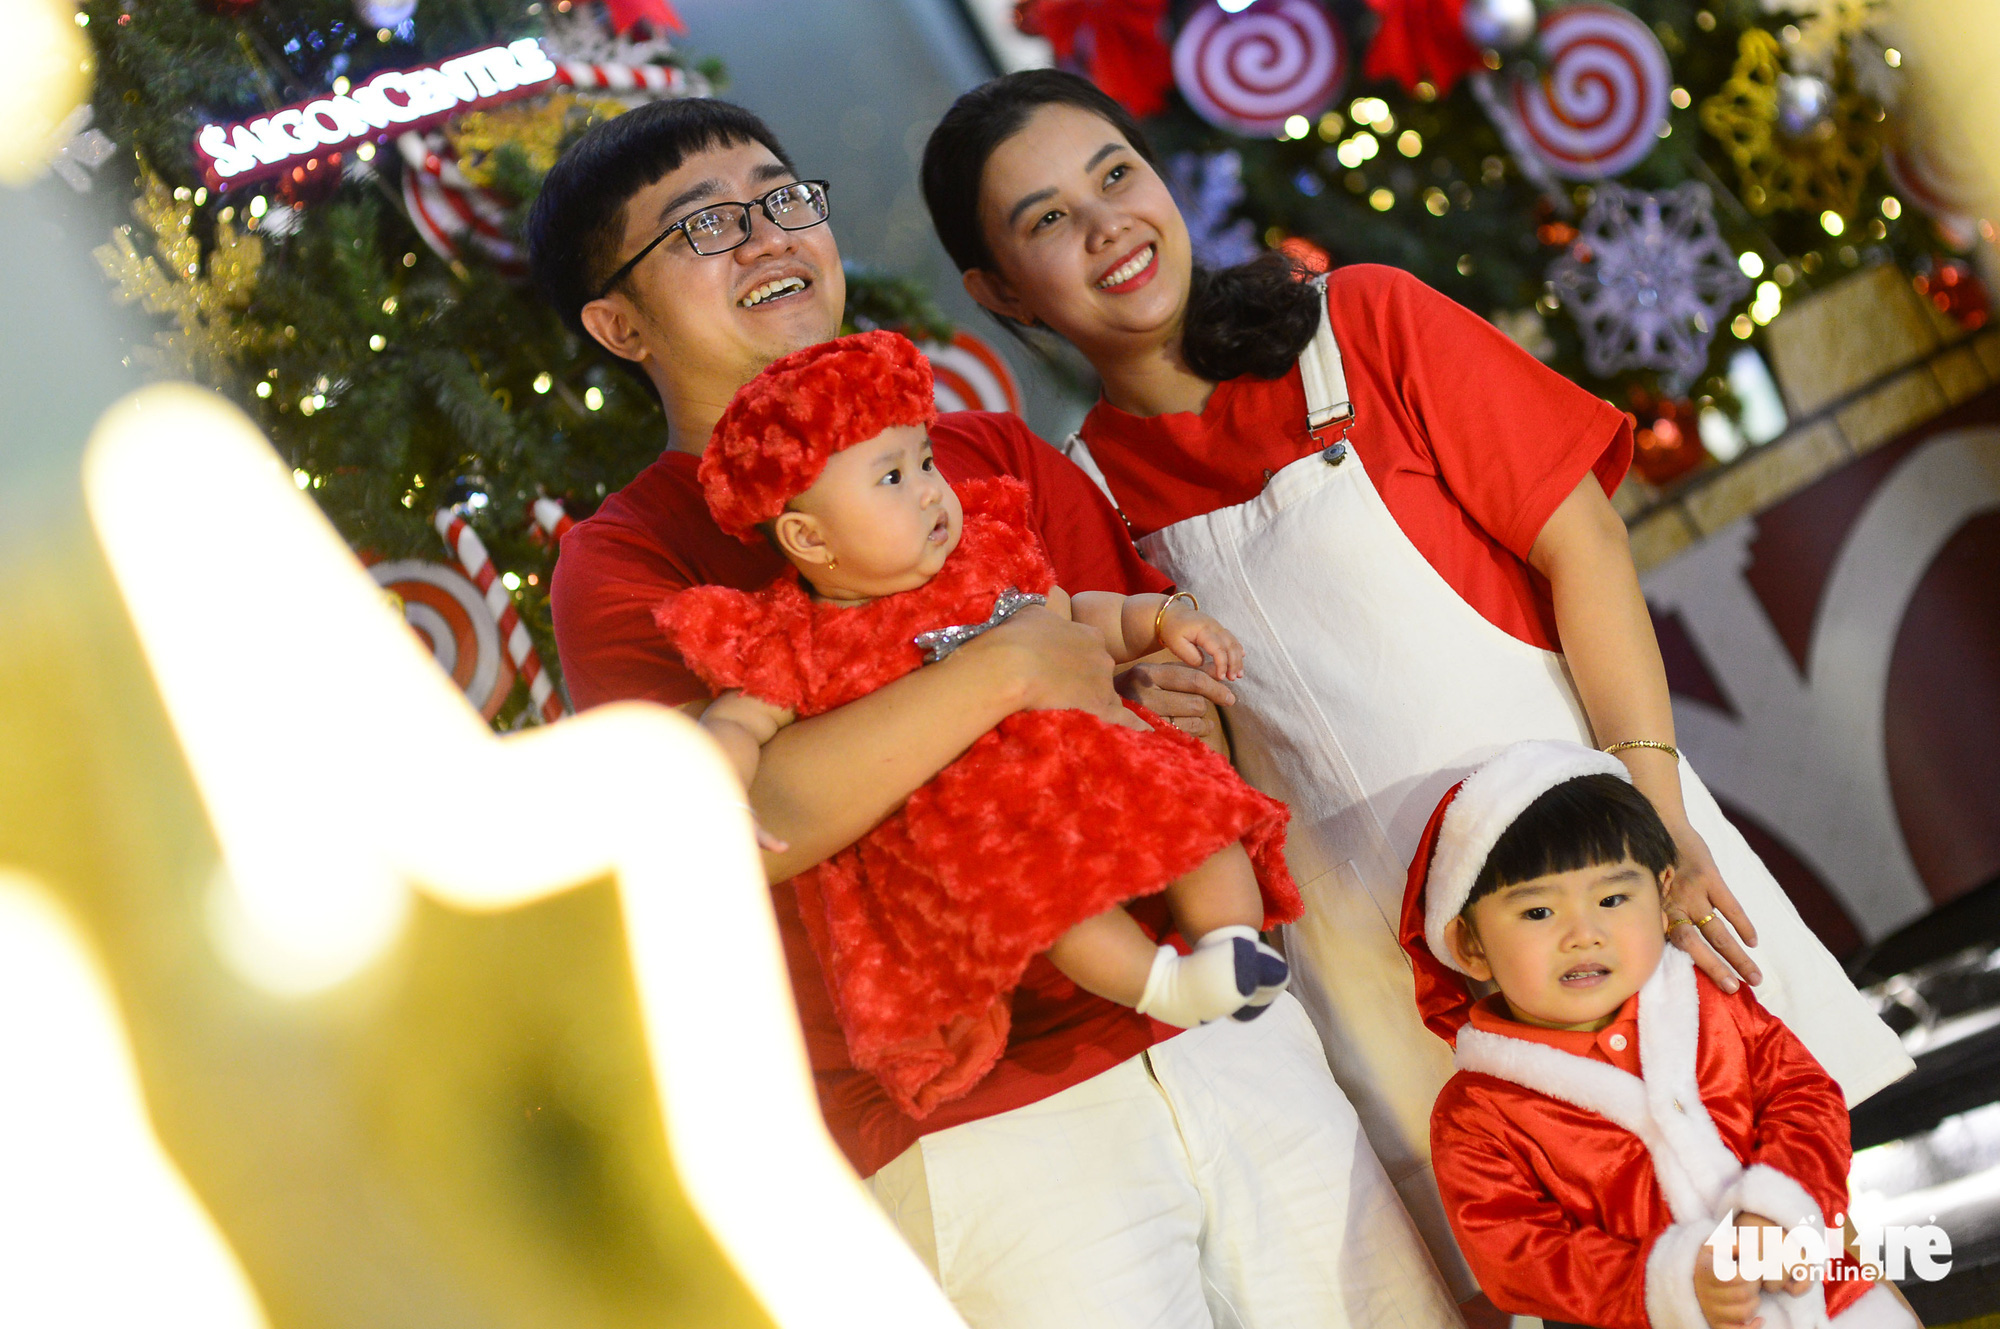 A family poses for a photo in downtown Ho Chi Minh City on Christmas Eve, December 24, 2020. Photo: Quang Dinh / Tuoi Tre